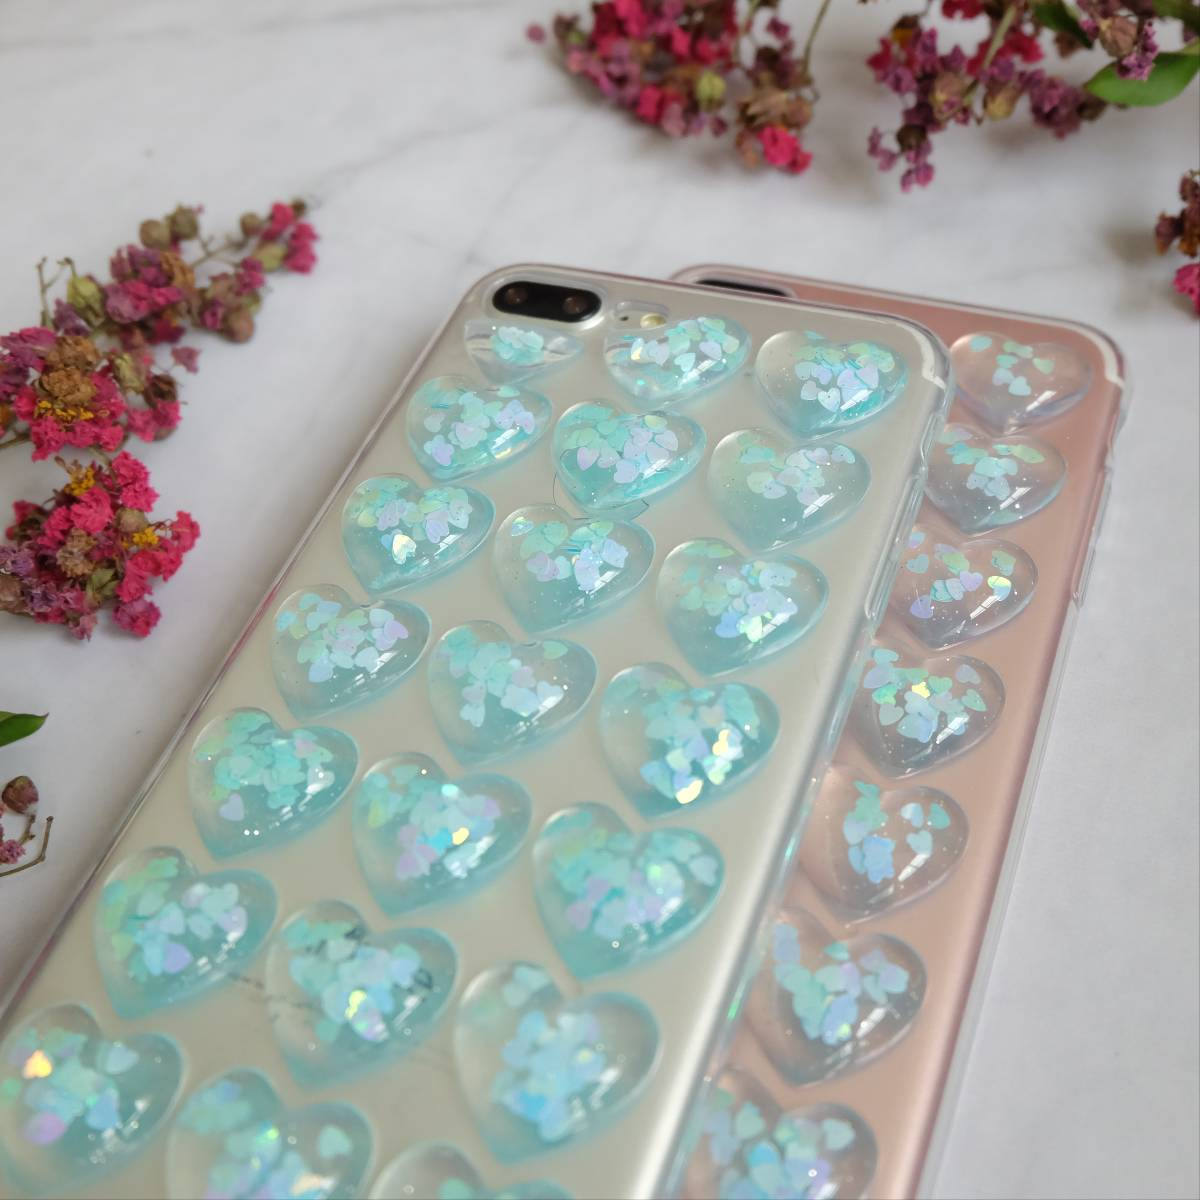 Icy Heart Soft 3d Case4